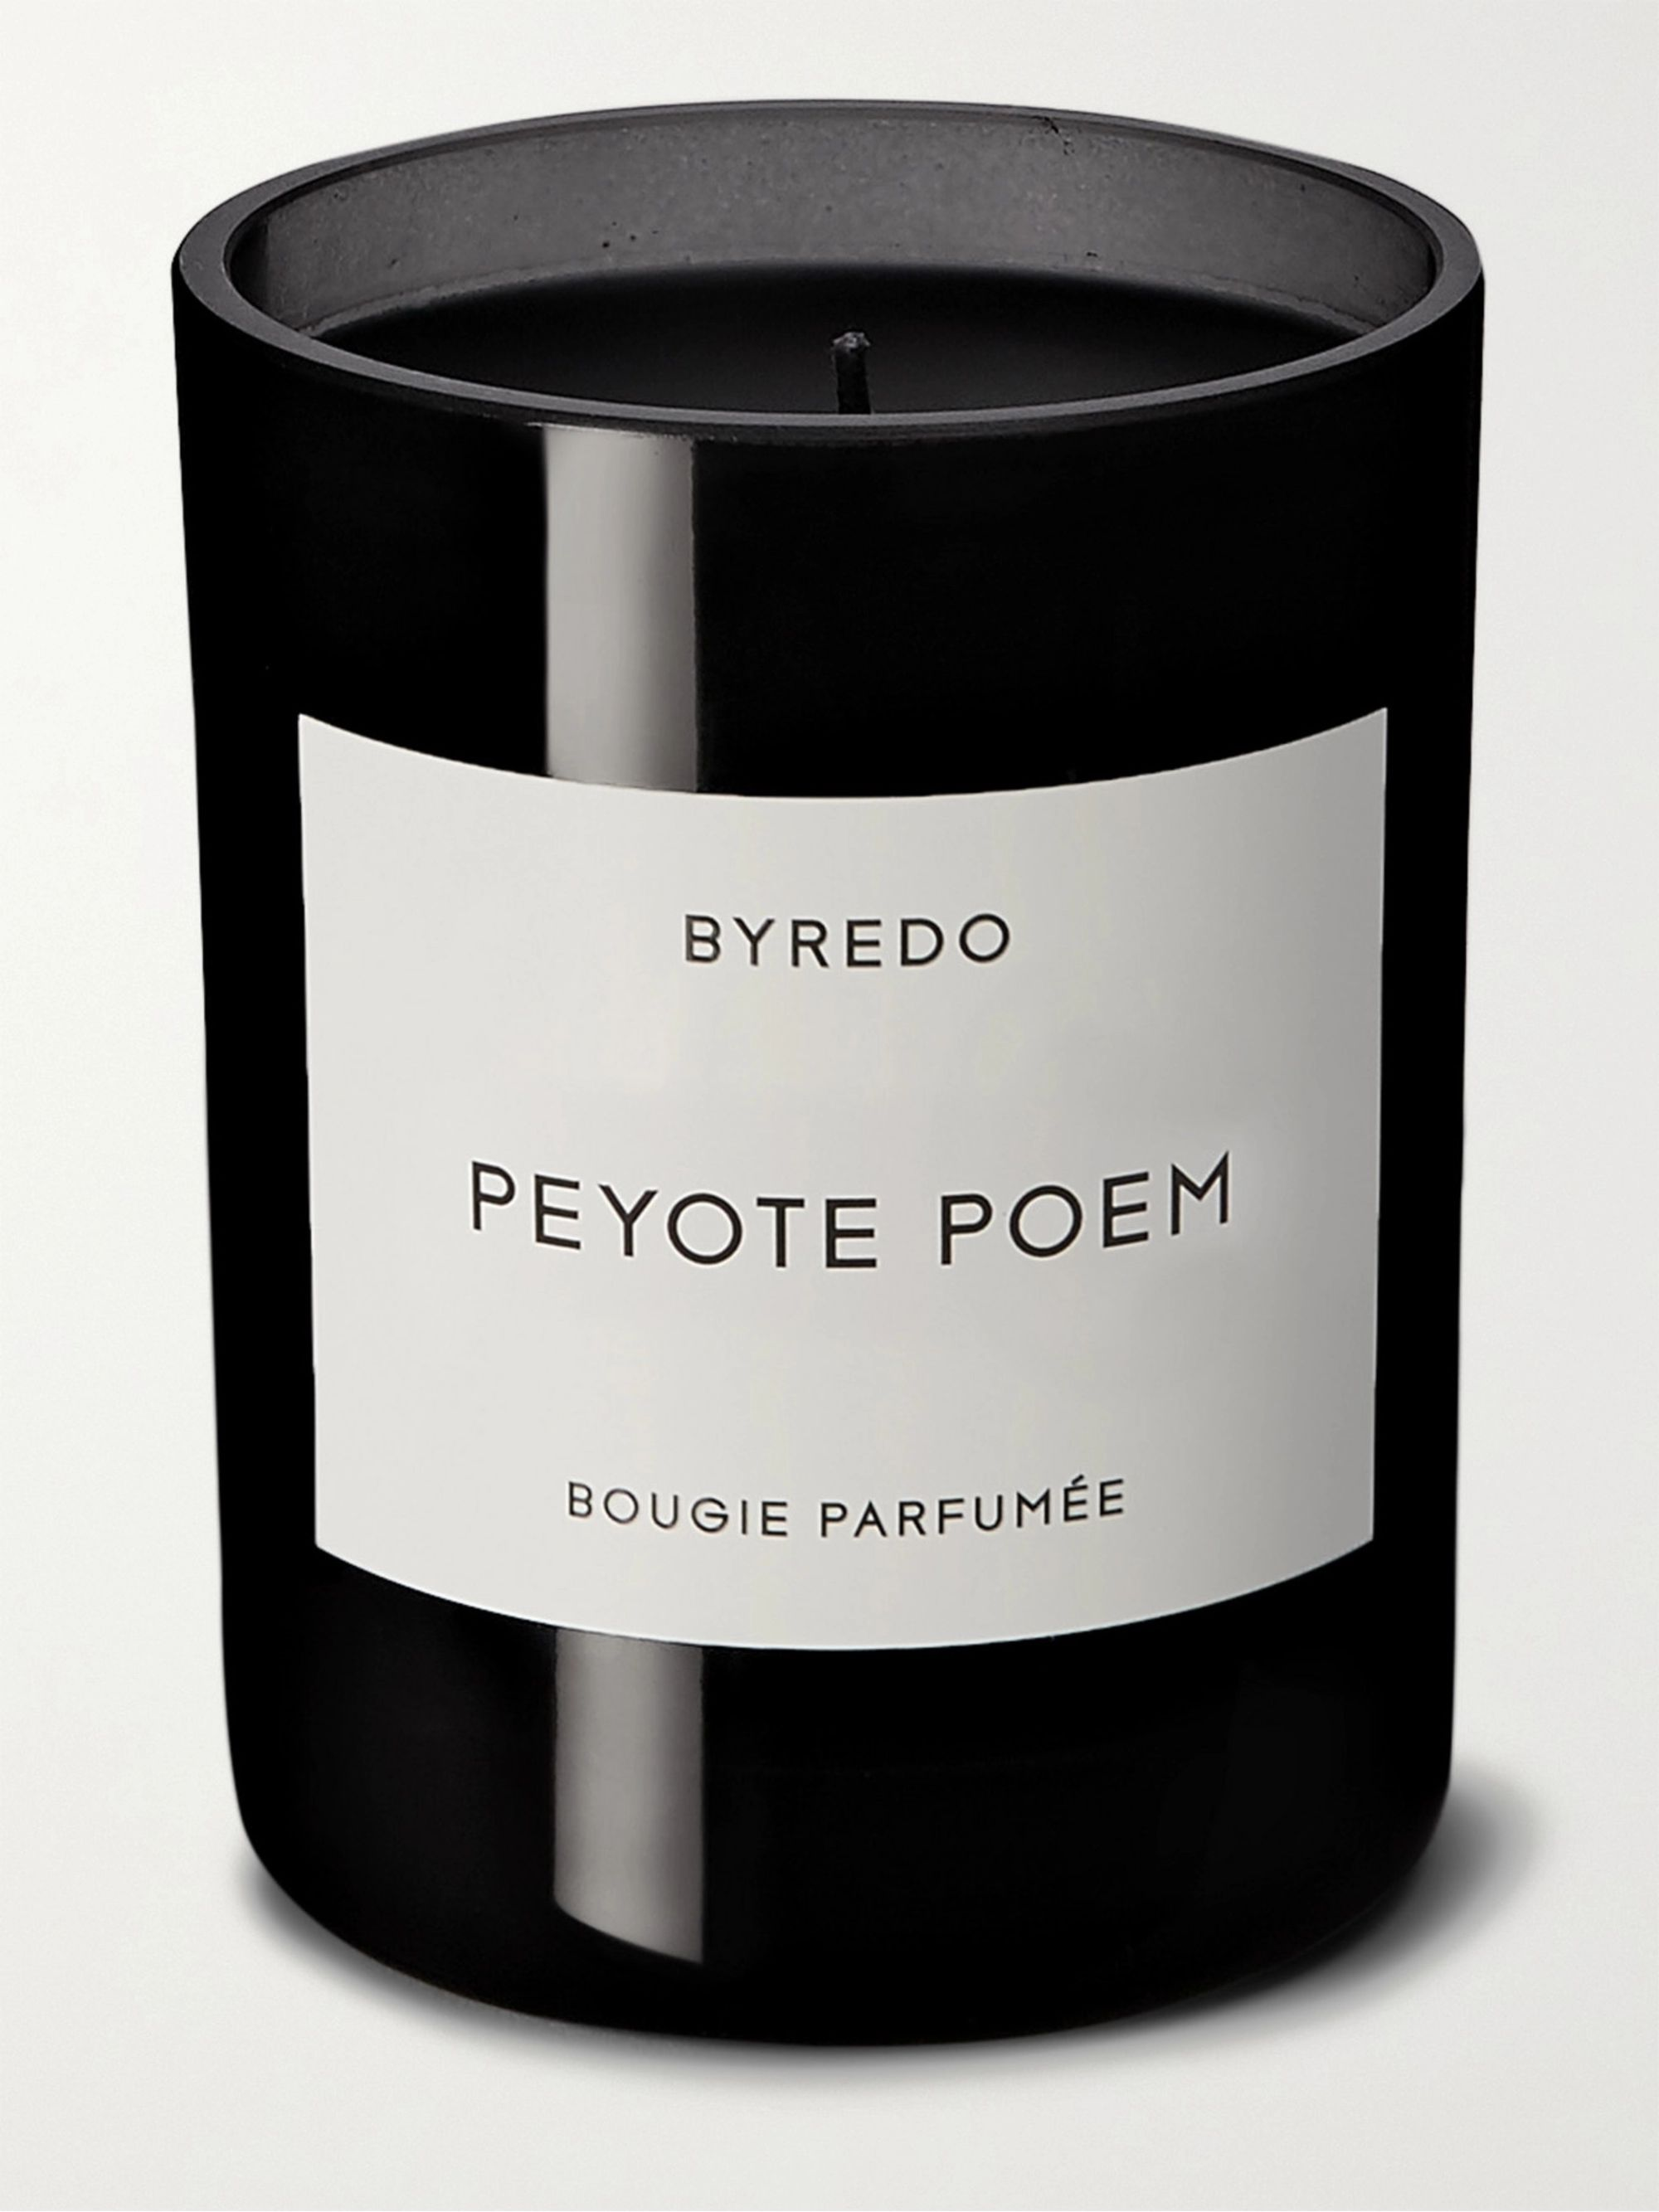 바이레도 캔들 Byredo Peyote Poem Scented Candle 240g